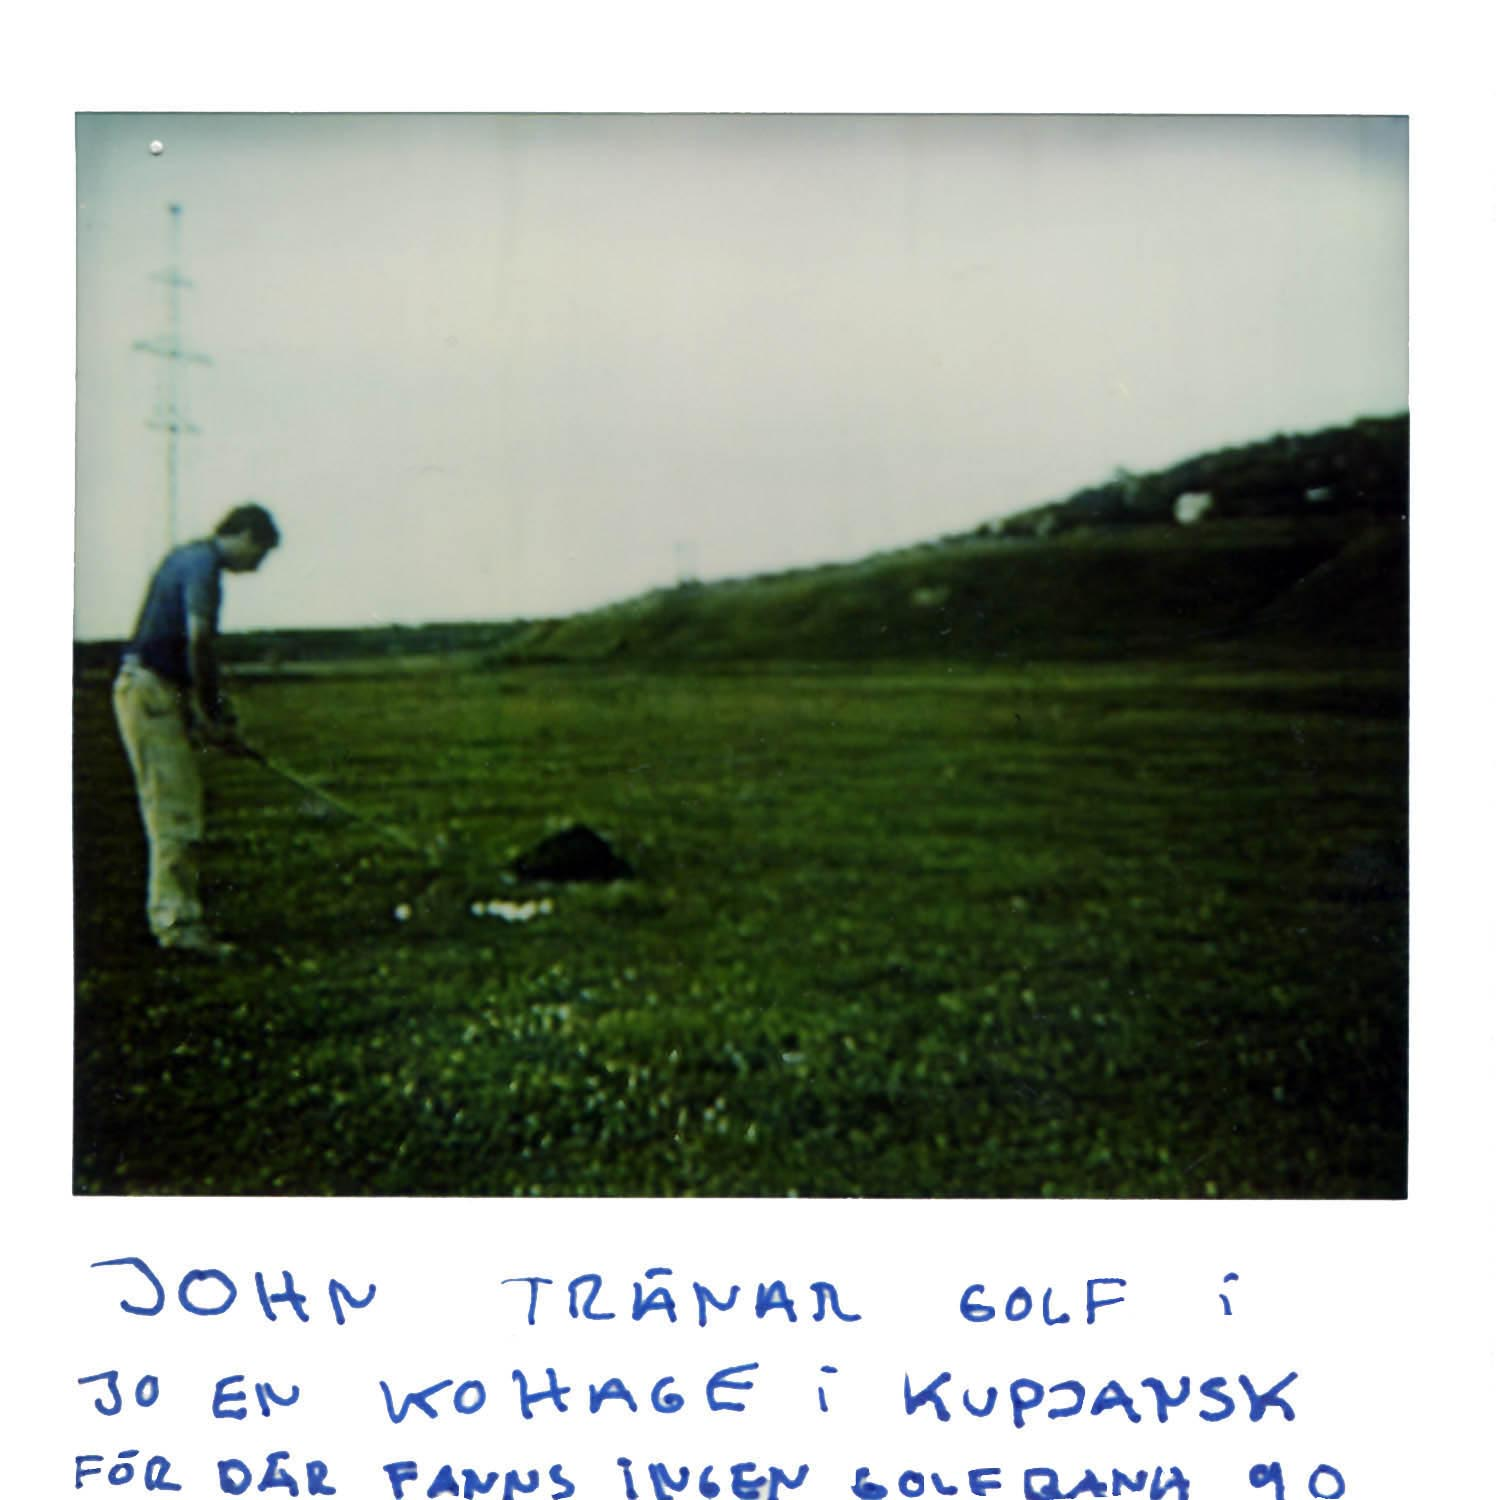 Johan is training golf on a field full of cows inKupiansk (because there was no golf course  -90